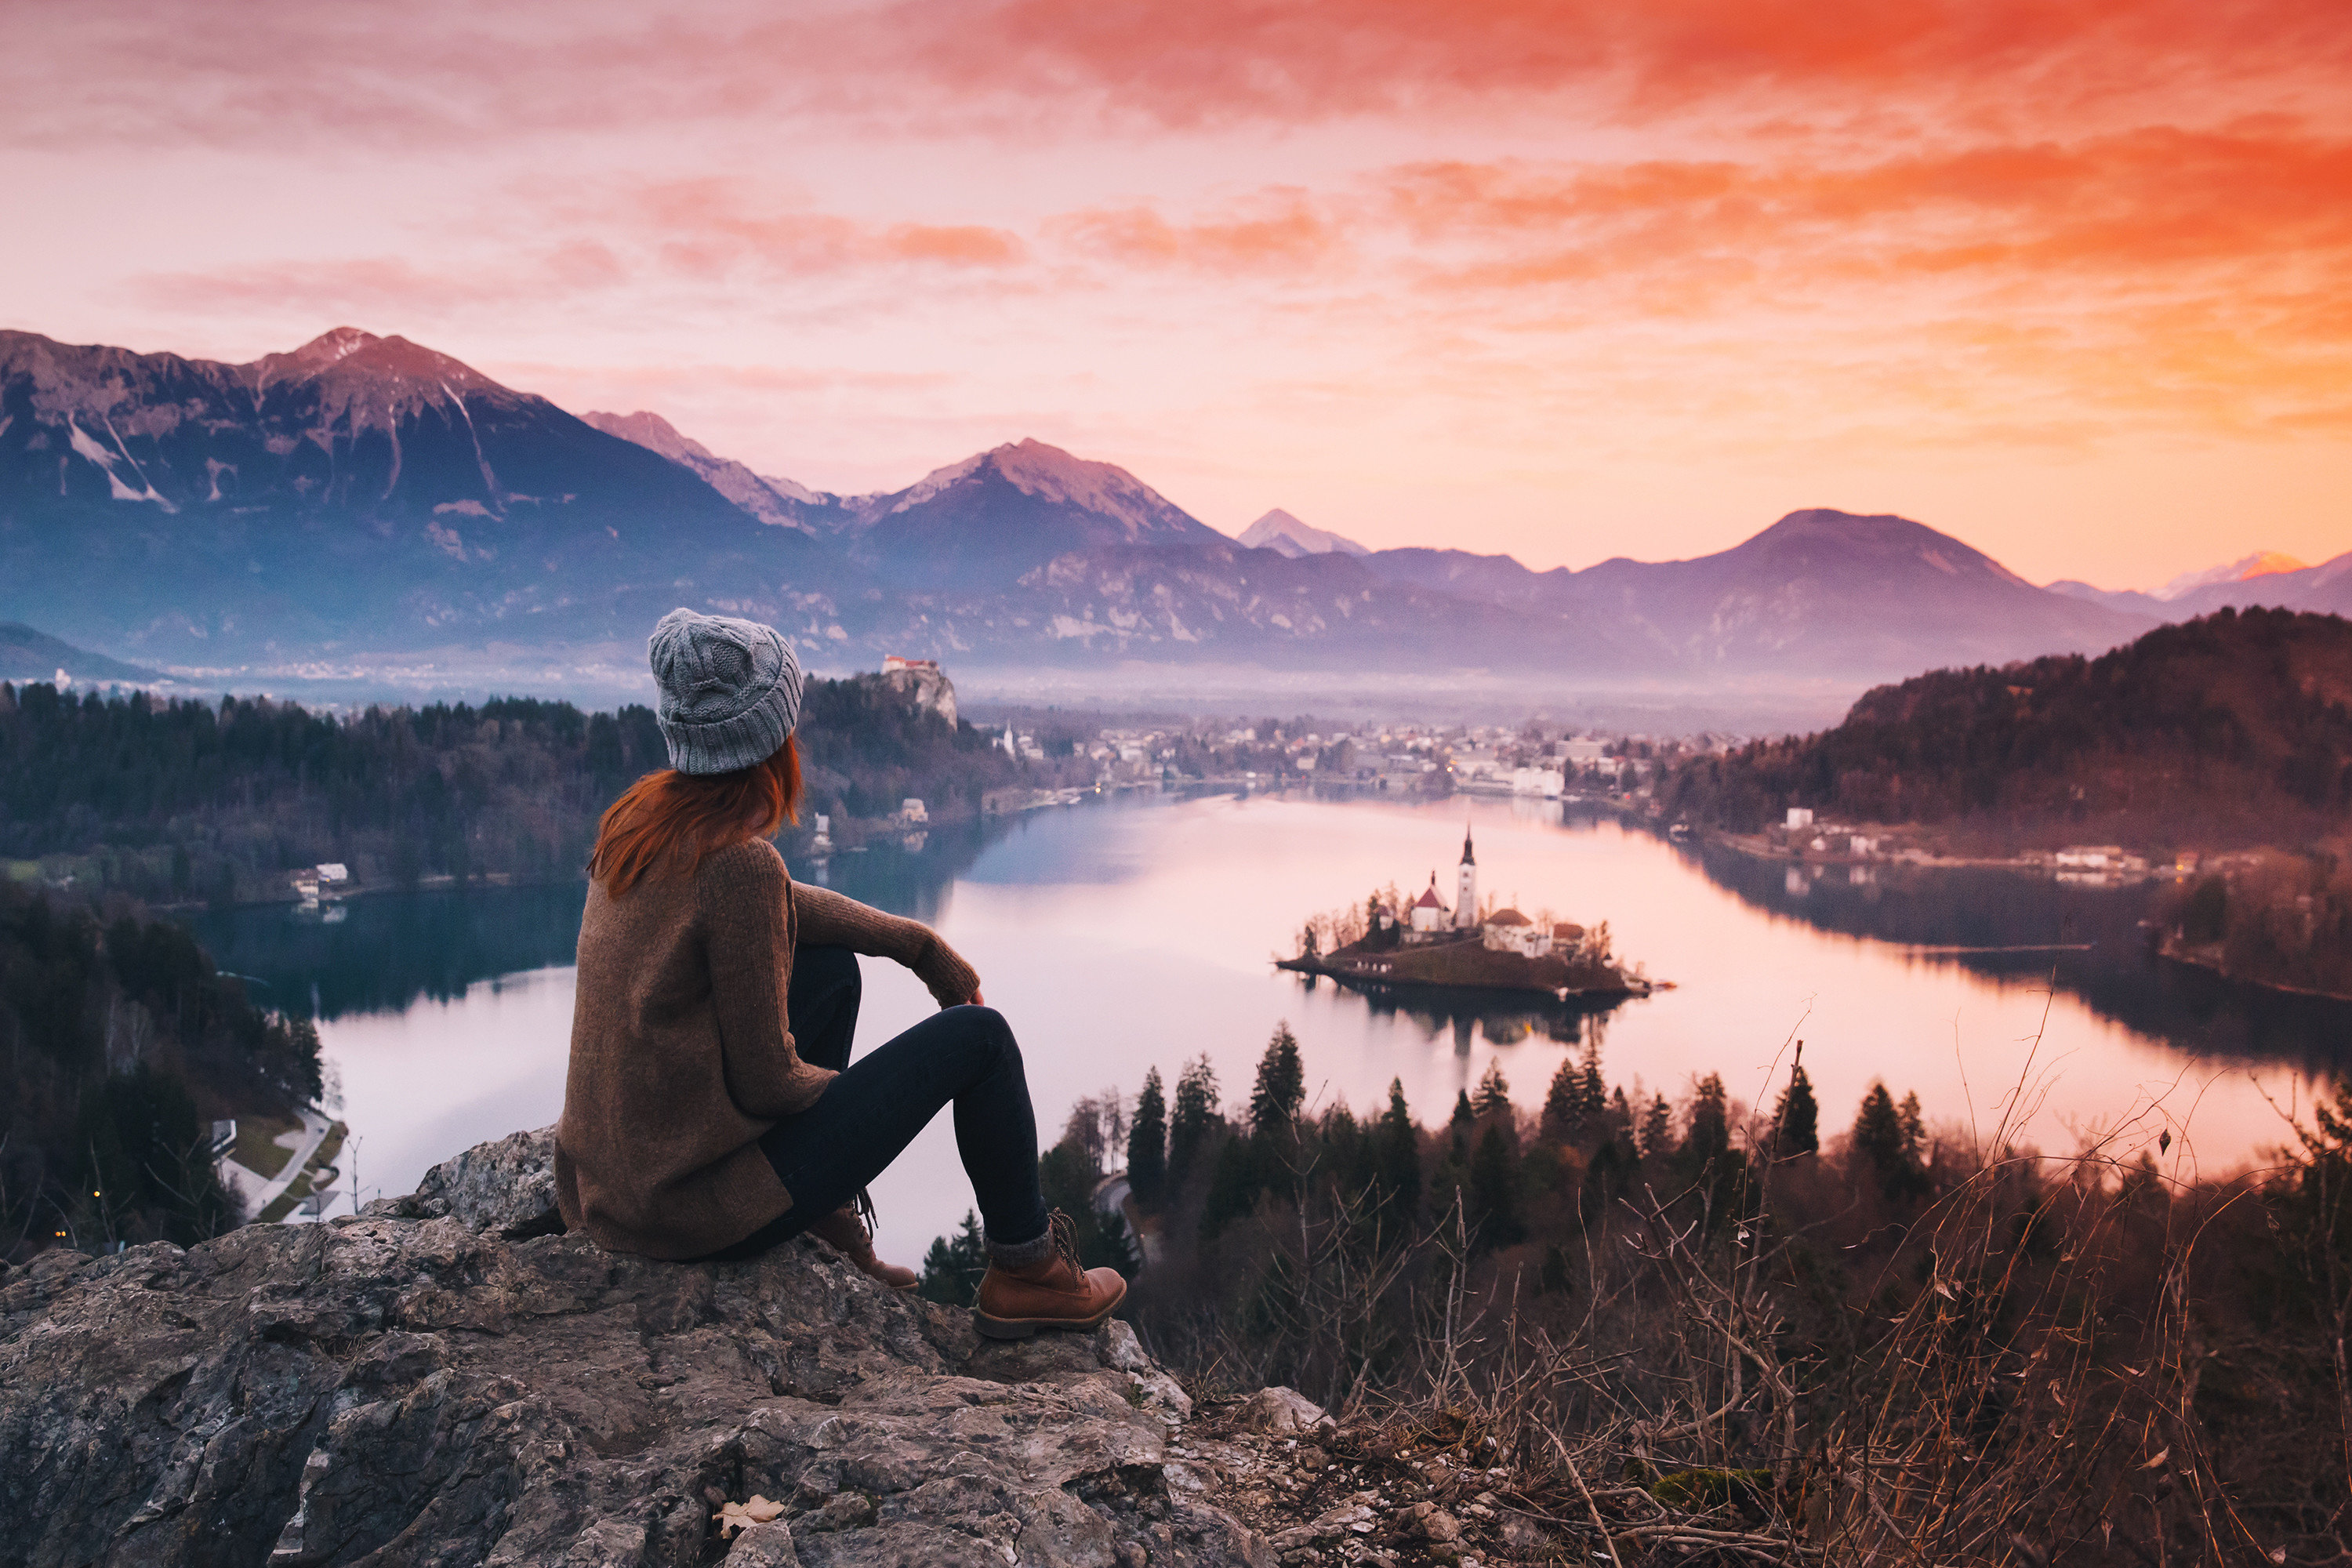 Style + Design outdoor mountain sky Nature reflection mountainous landforms wilderness man Lake person water photography mountain range morning tree cloud landscape loch canyon sunrise evening national park fell lake district mount scenery Winter rock glacial landform dawn alps fjord